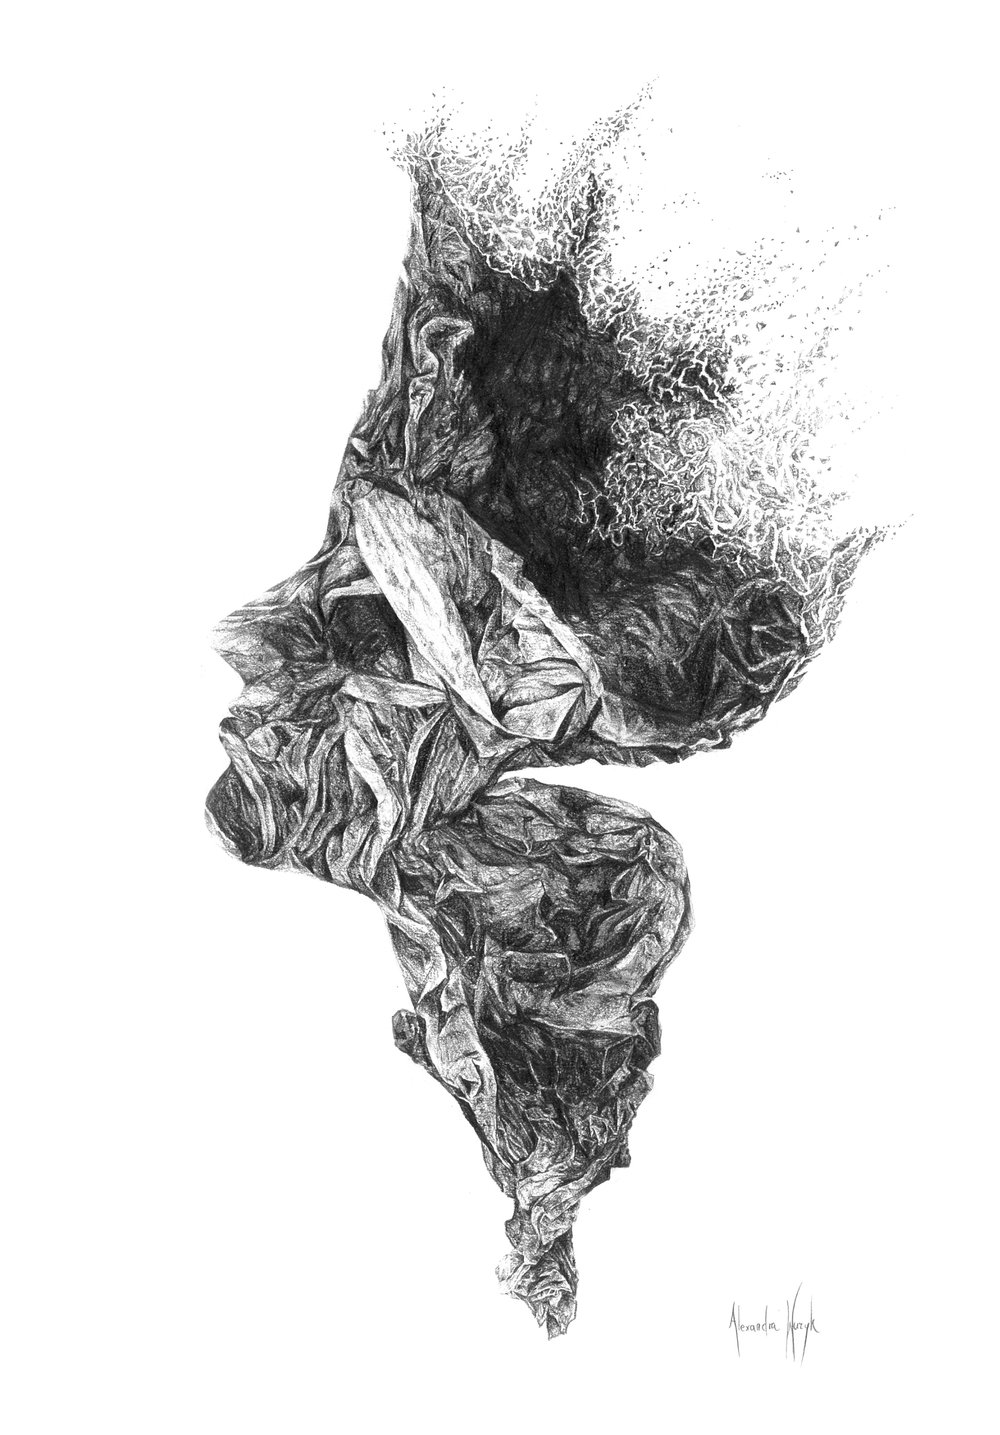 Crumpled Paper, 210 × 297mm, Pencil on Paper, 21-08-17